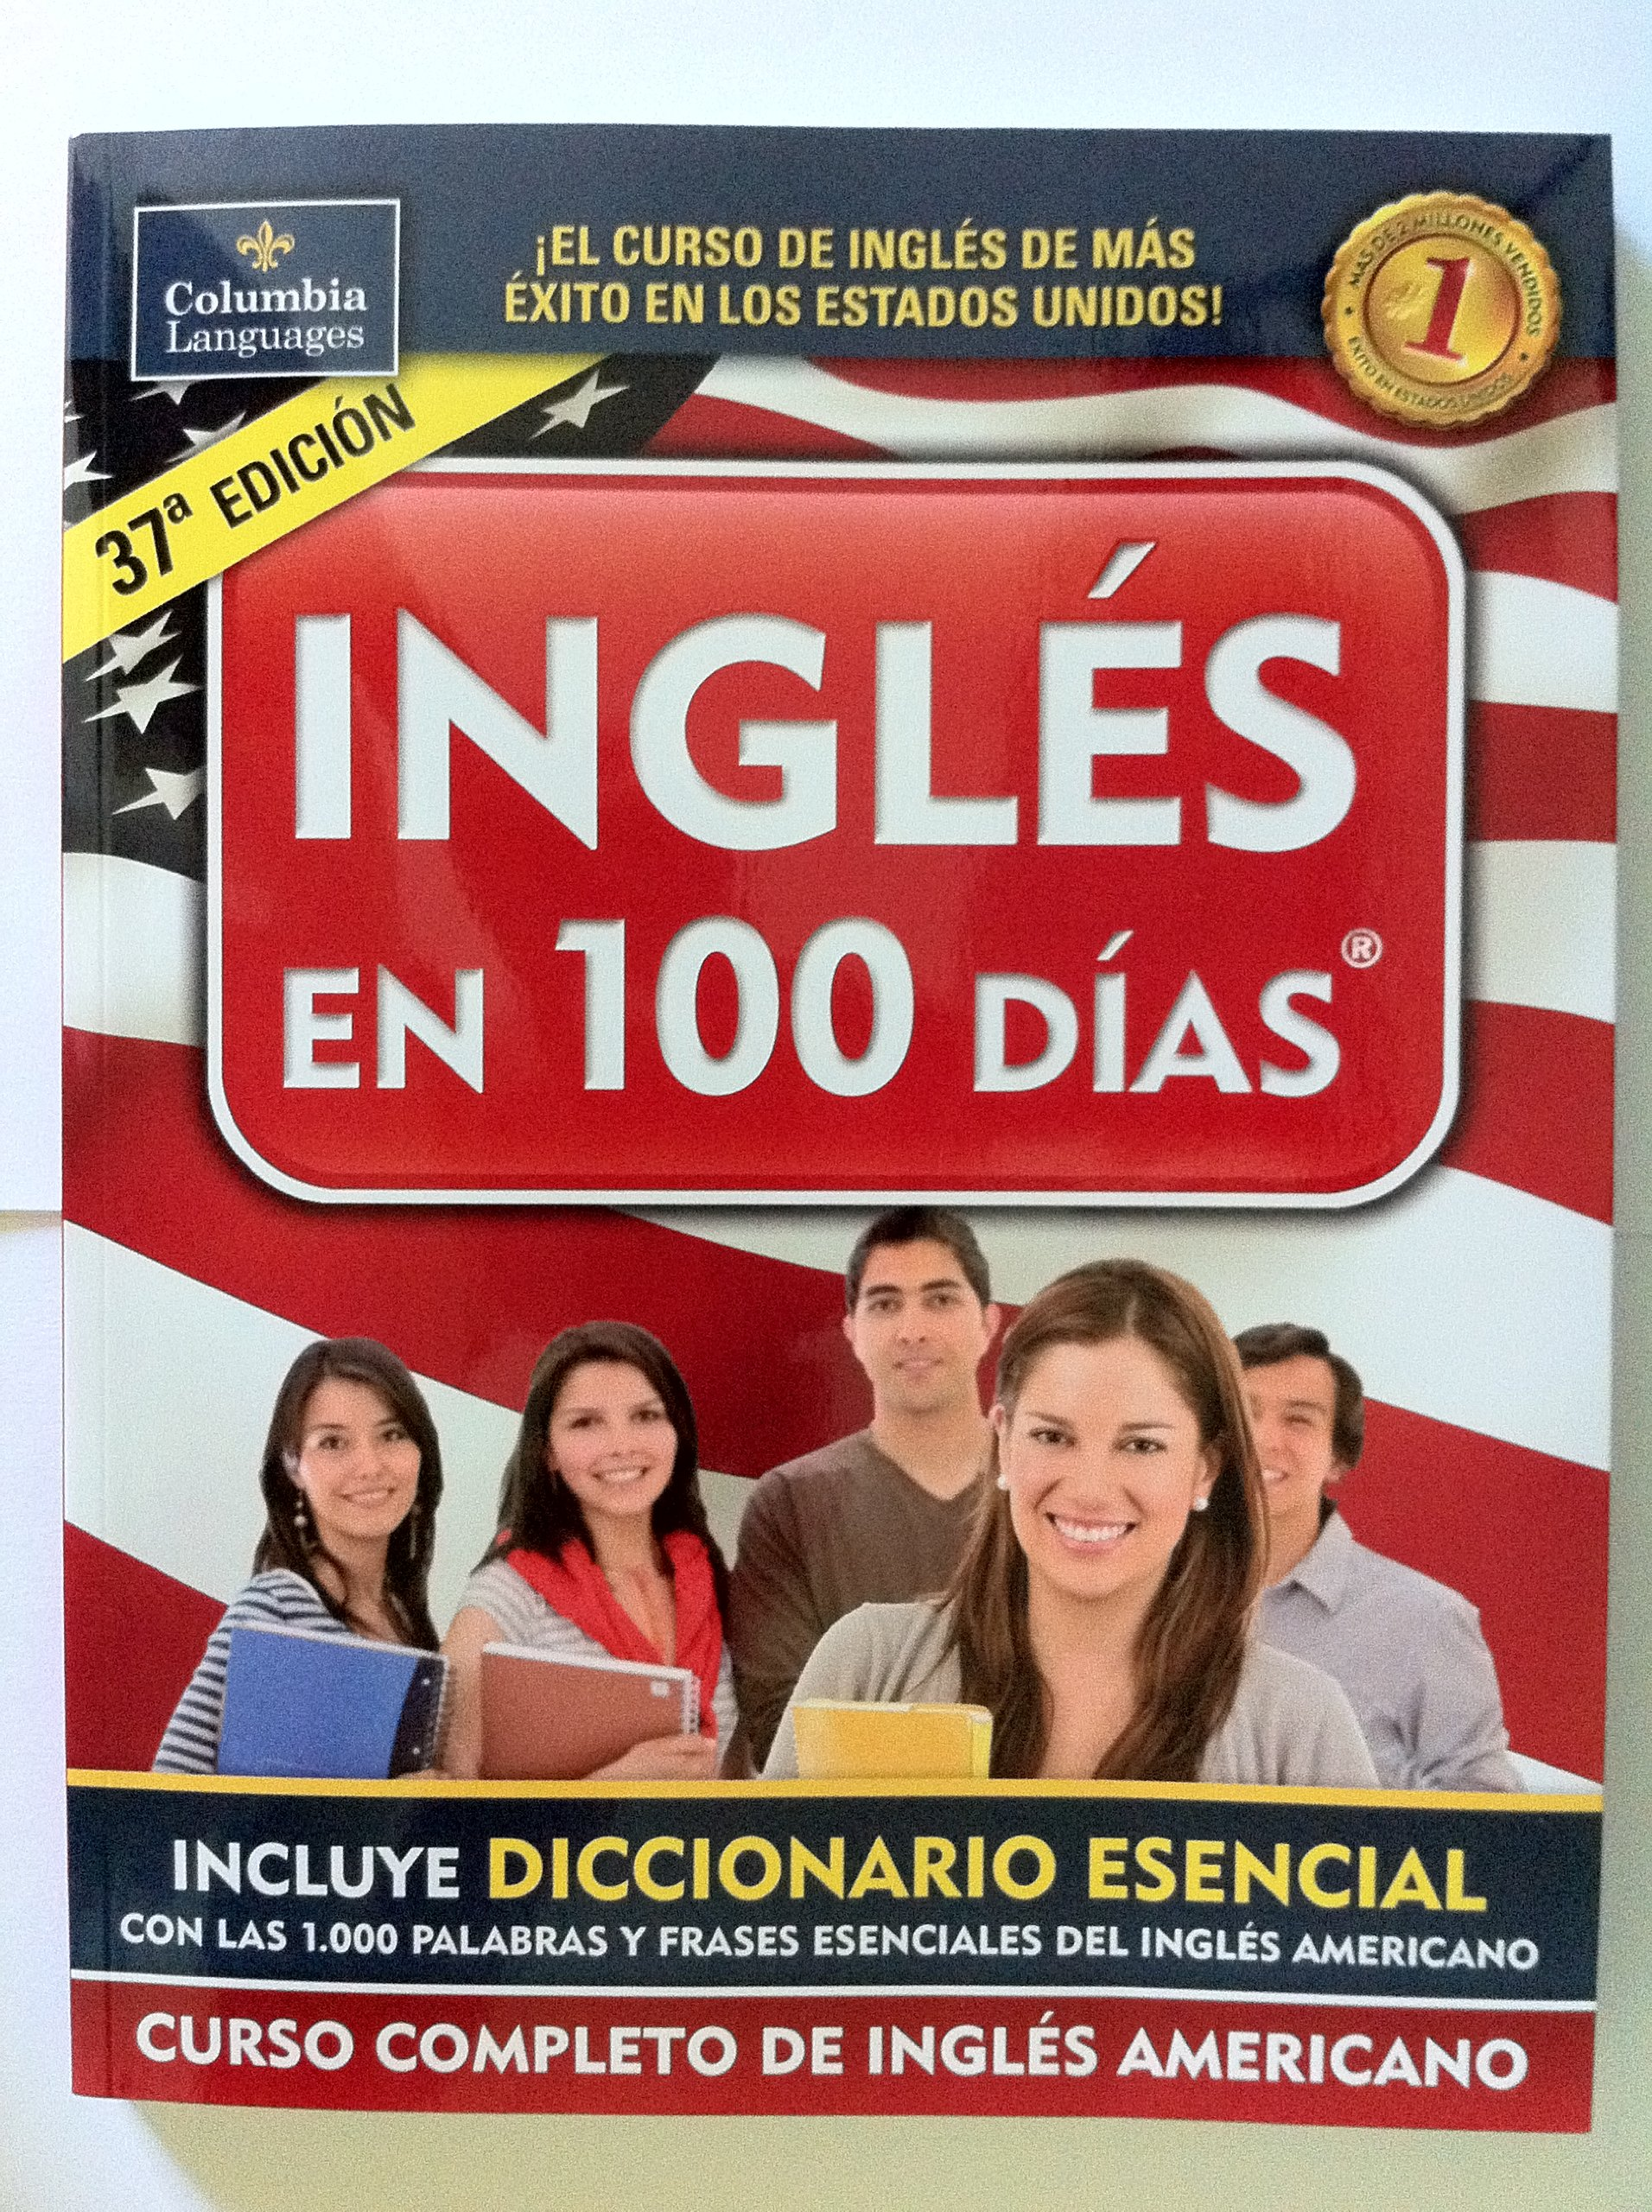 Ingles En 100 Dias - Turbo Ingles / English in 100 Days (Curso Completo) (Spanish Edition) (Audio Cd Pack) Unknown Binding – 2011